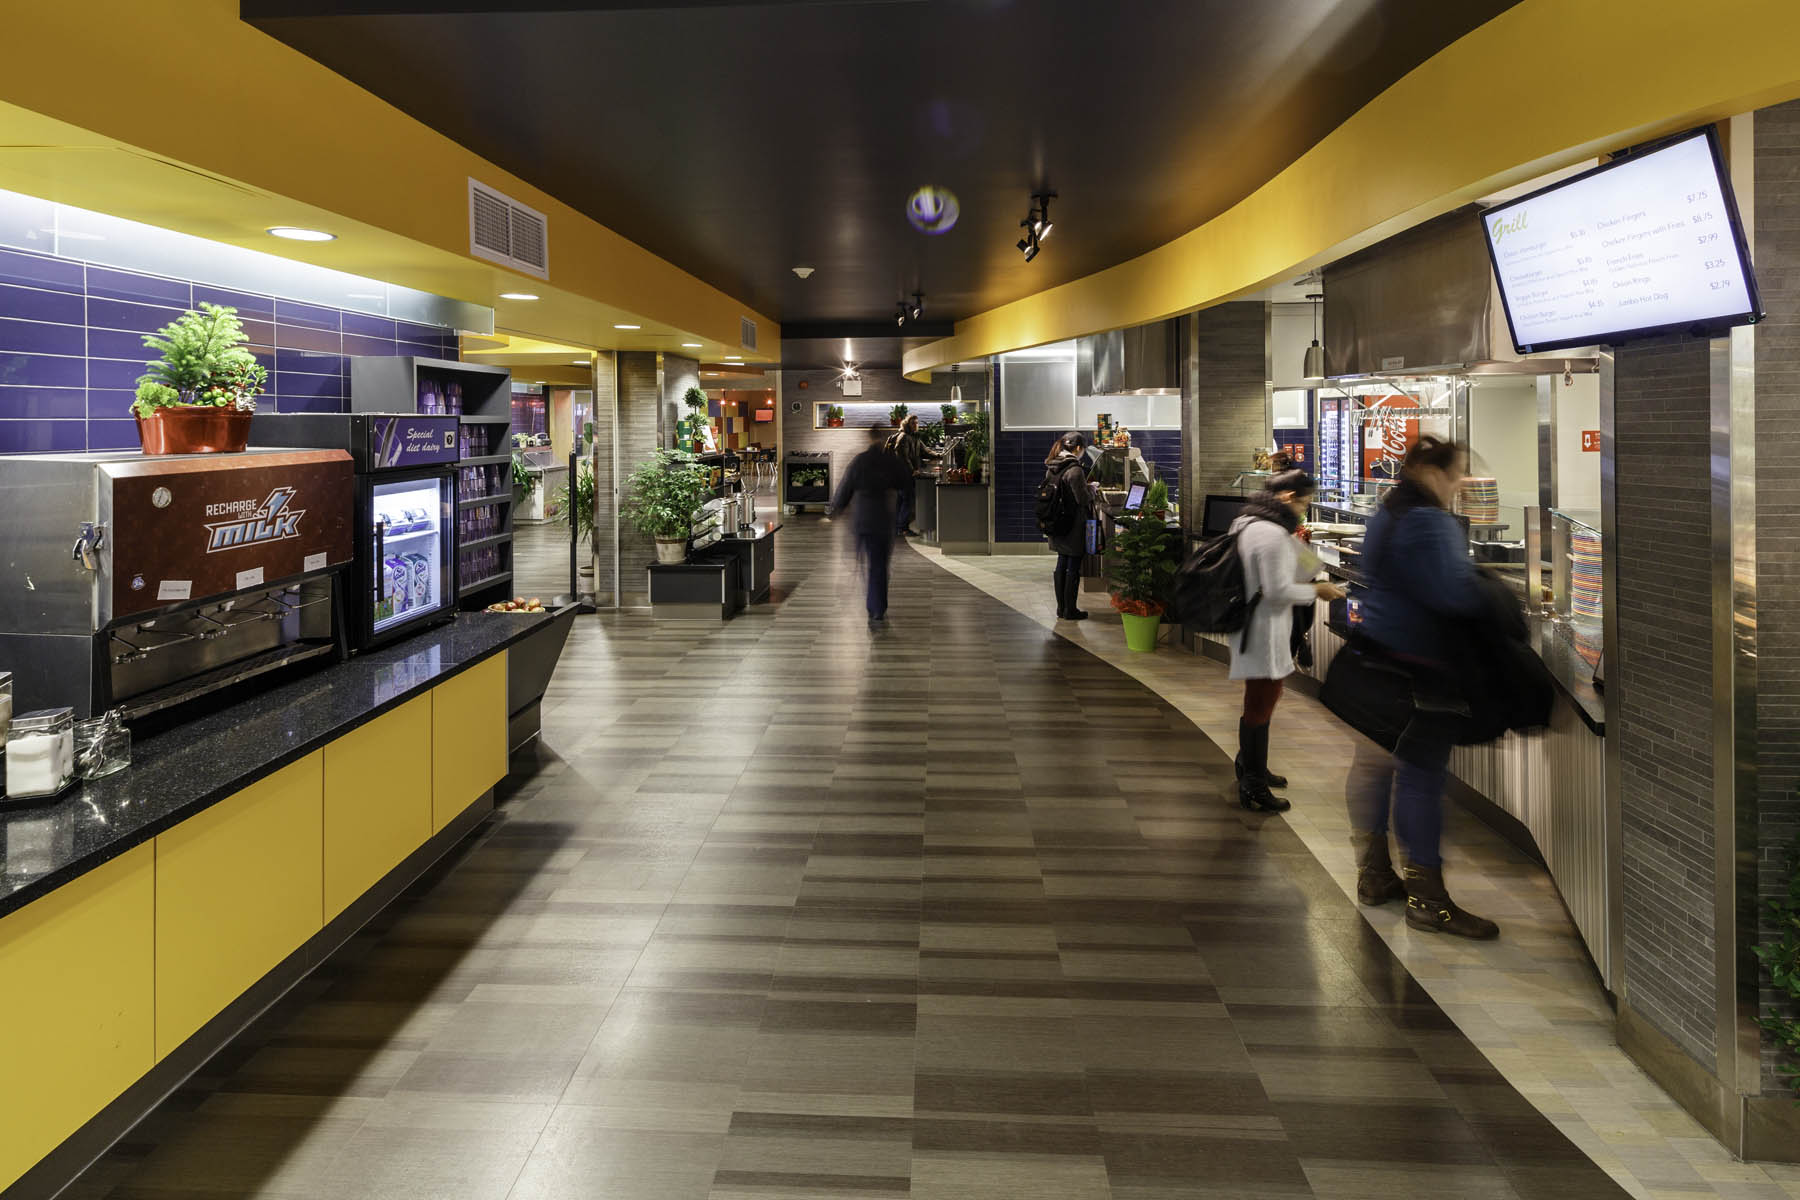 Students browsing food market stalls on right and vending machines on left with yellow counter and ceiling feature